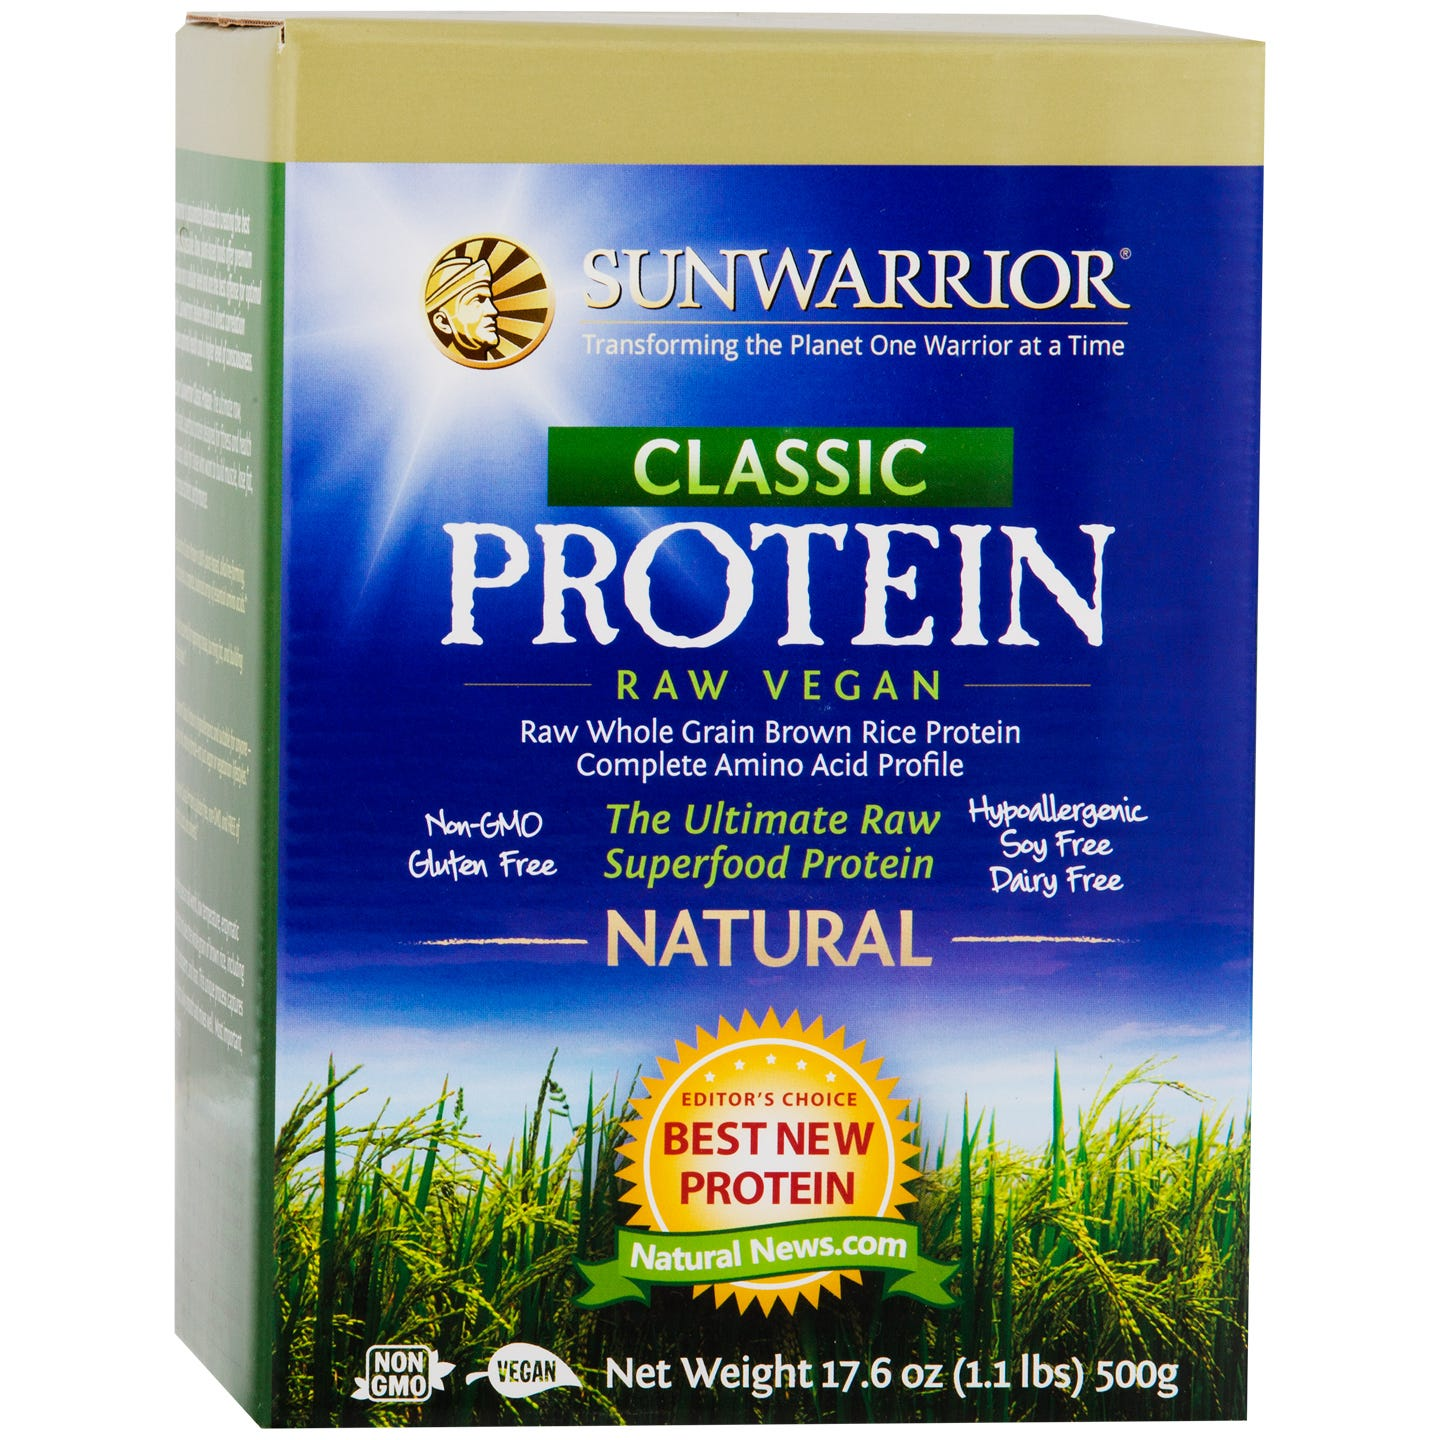 Classic Protein Natural 1.1lb, Sunwarrior - Rapid Diet Weight Loss Products Shop